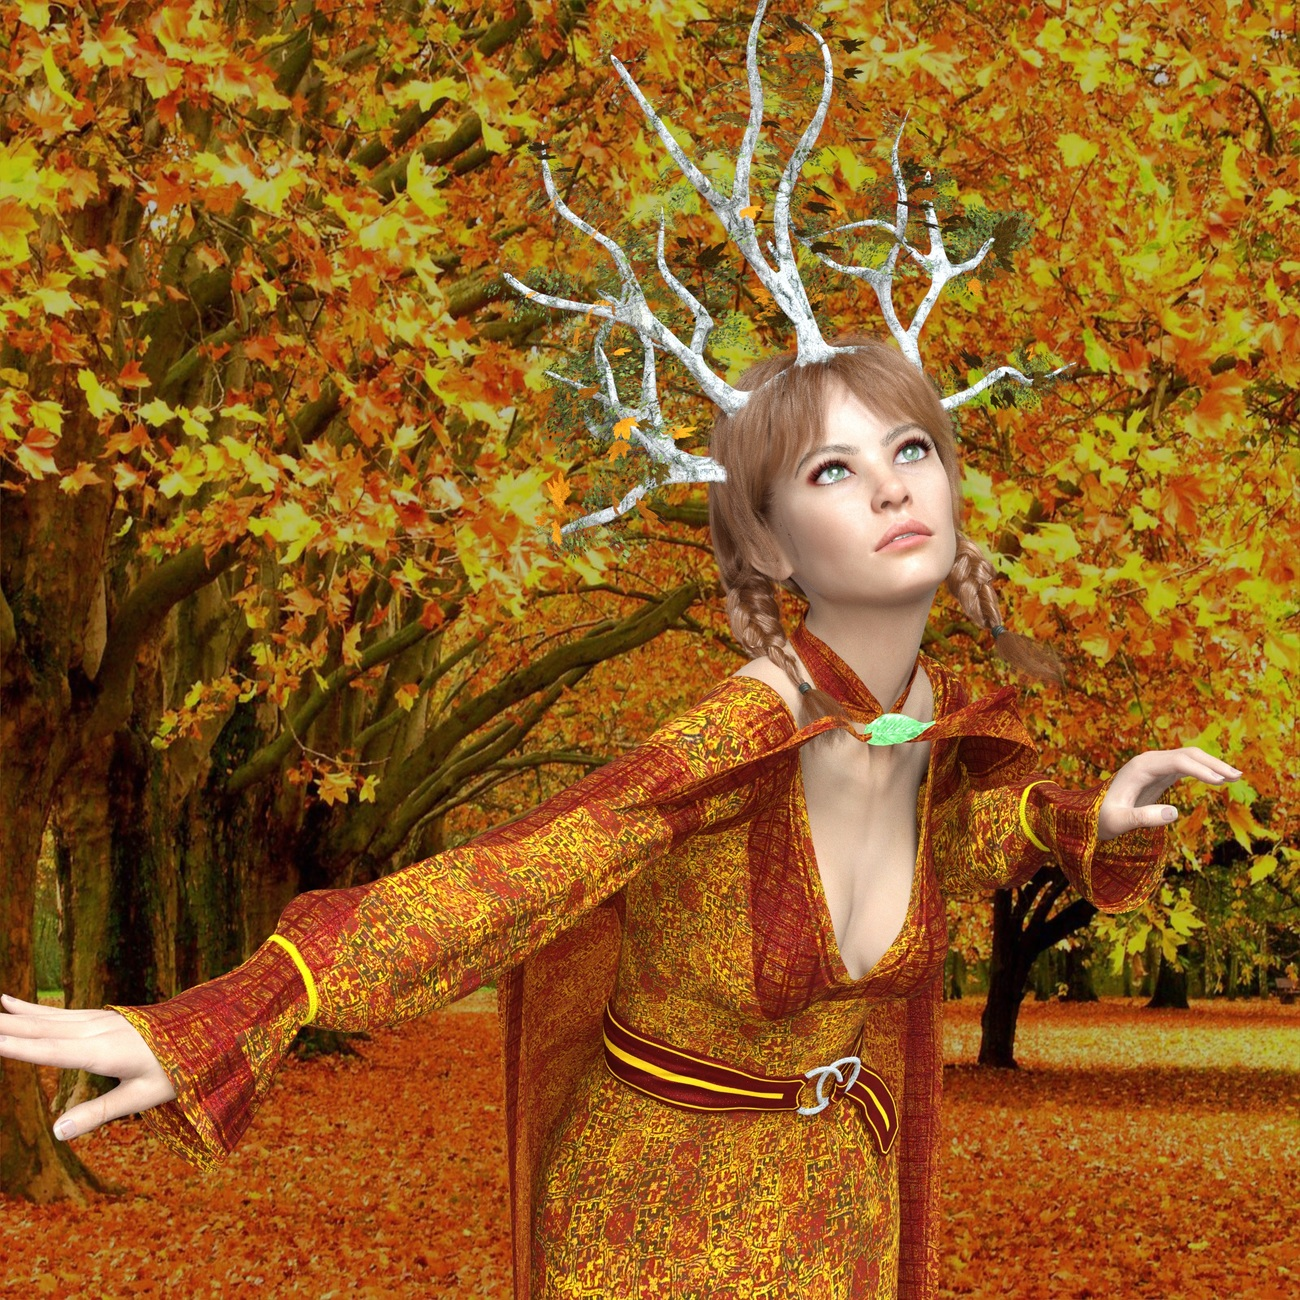 Romina The autumn Goddess by reizibarrientos